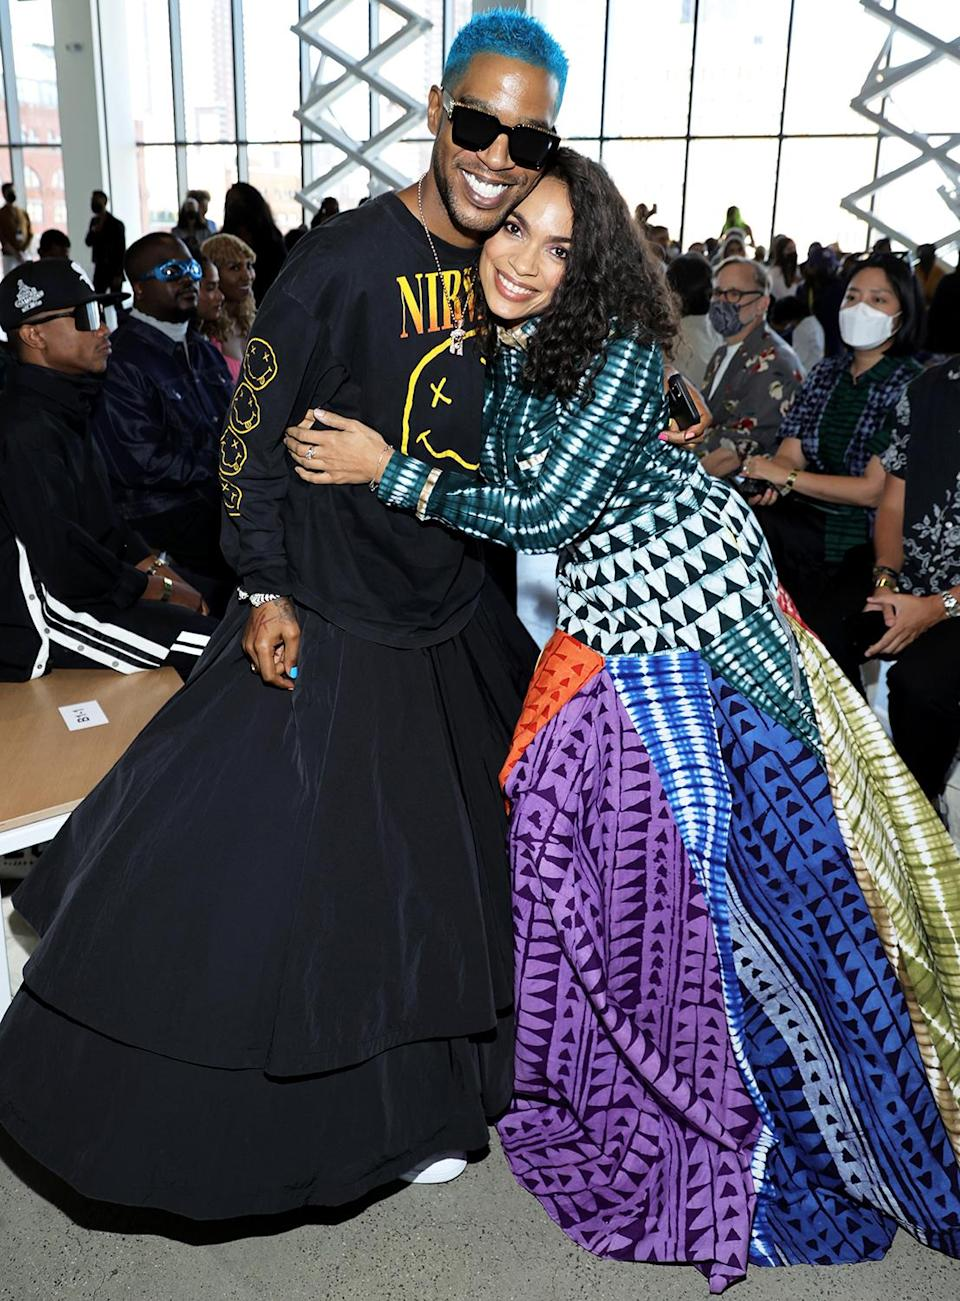 <p>Kid Cudi and Rosario Dawson are all smiles during New York Fashion Week while attending the Studio 189 presentation on Sept. 11 in N.Y.C.</p>